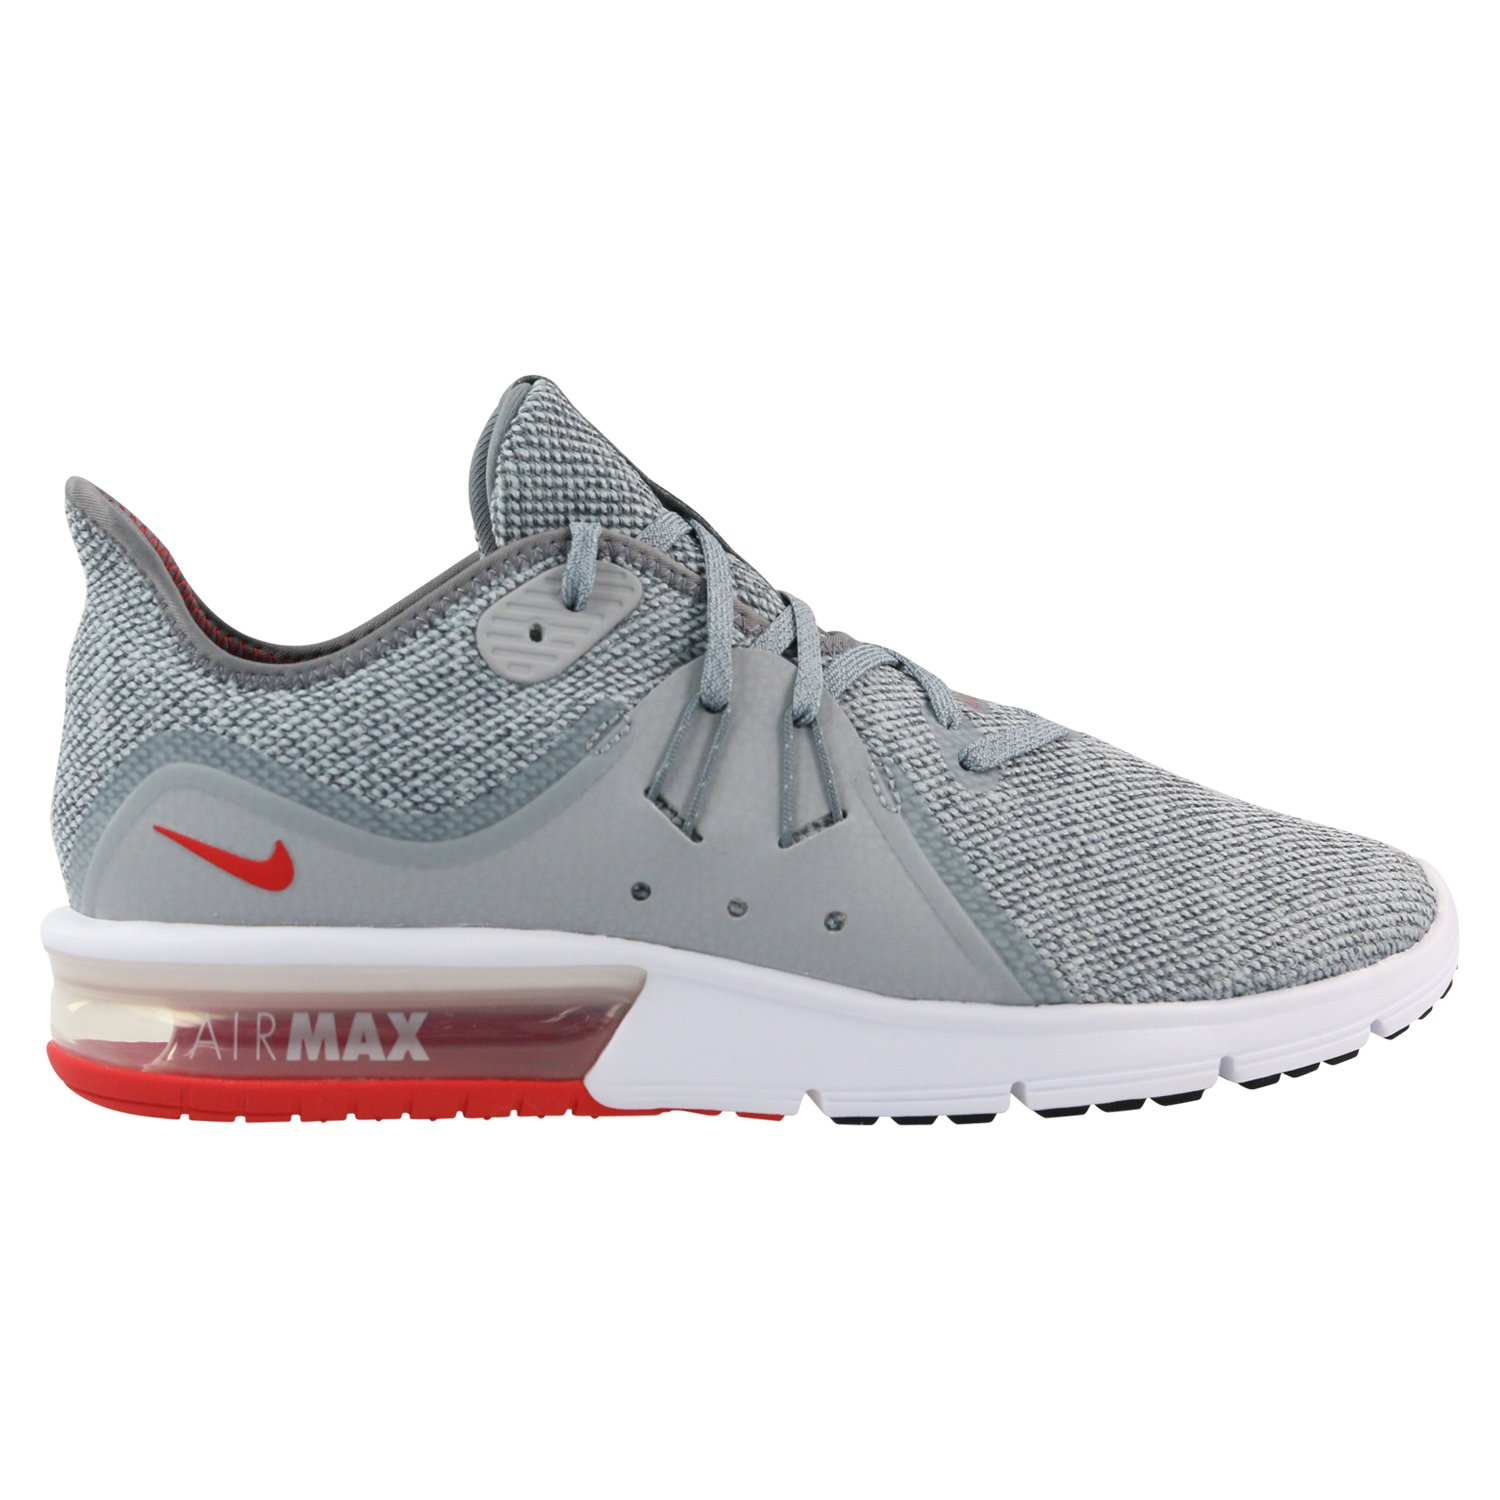 Nike Men's Air Max Sequent 3 Running Shoes Cool Grey/University Red 7